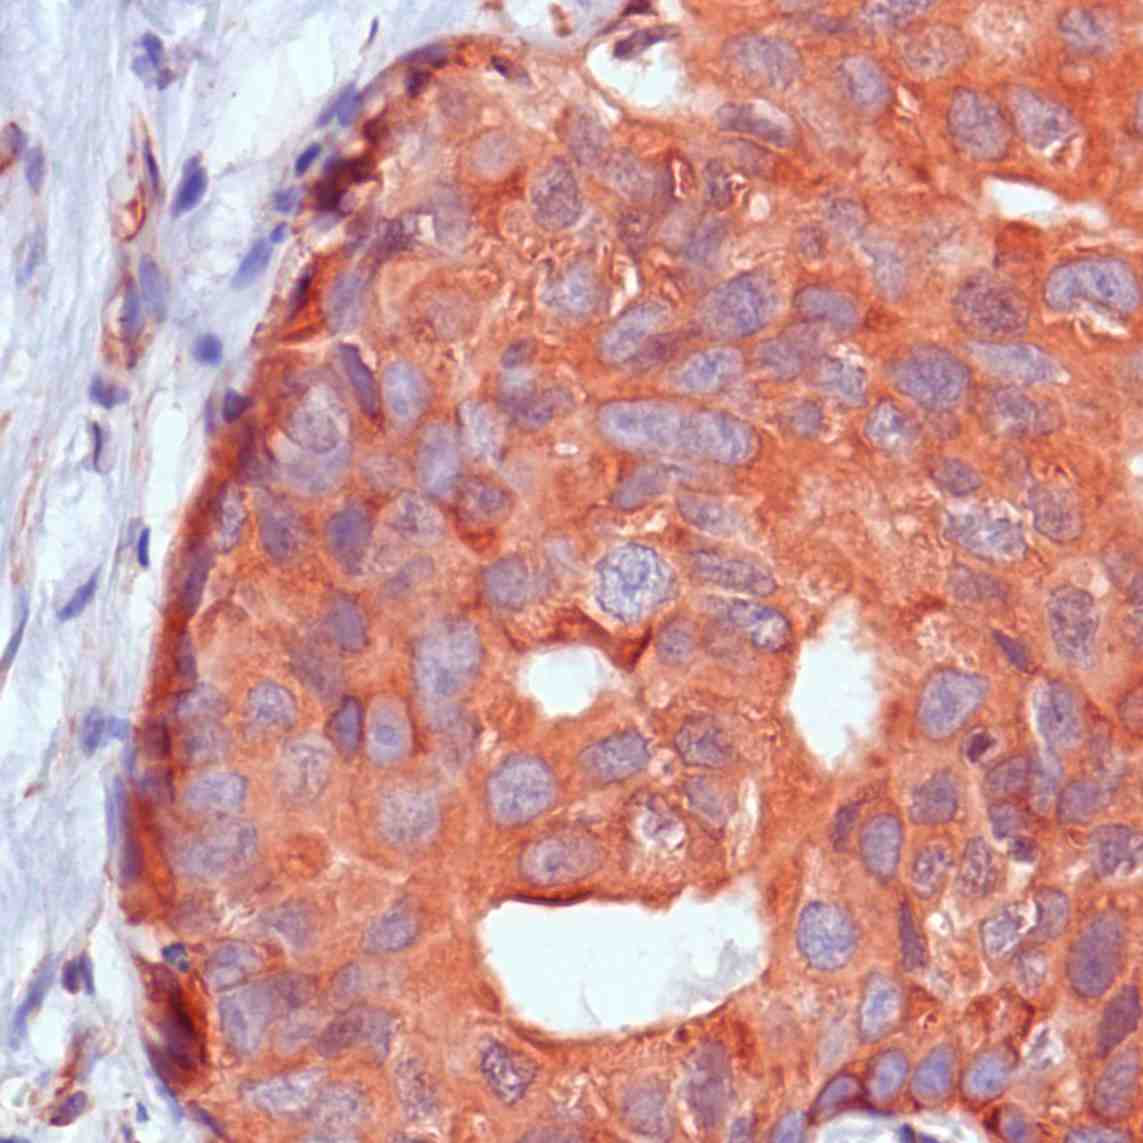 Human Breast Carcinoma stained with anti-Calpastatin antibody